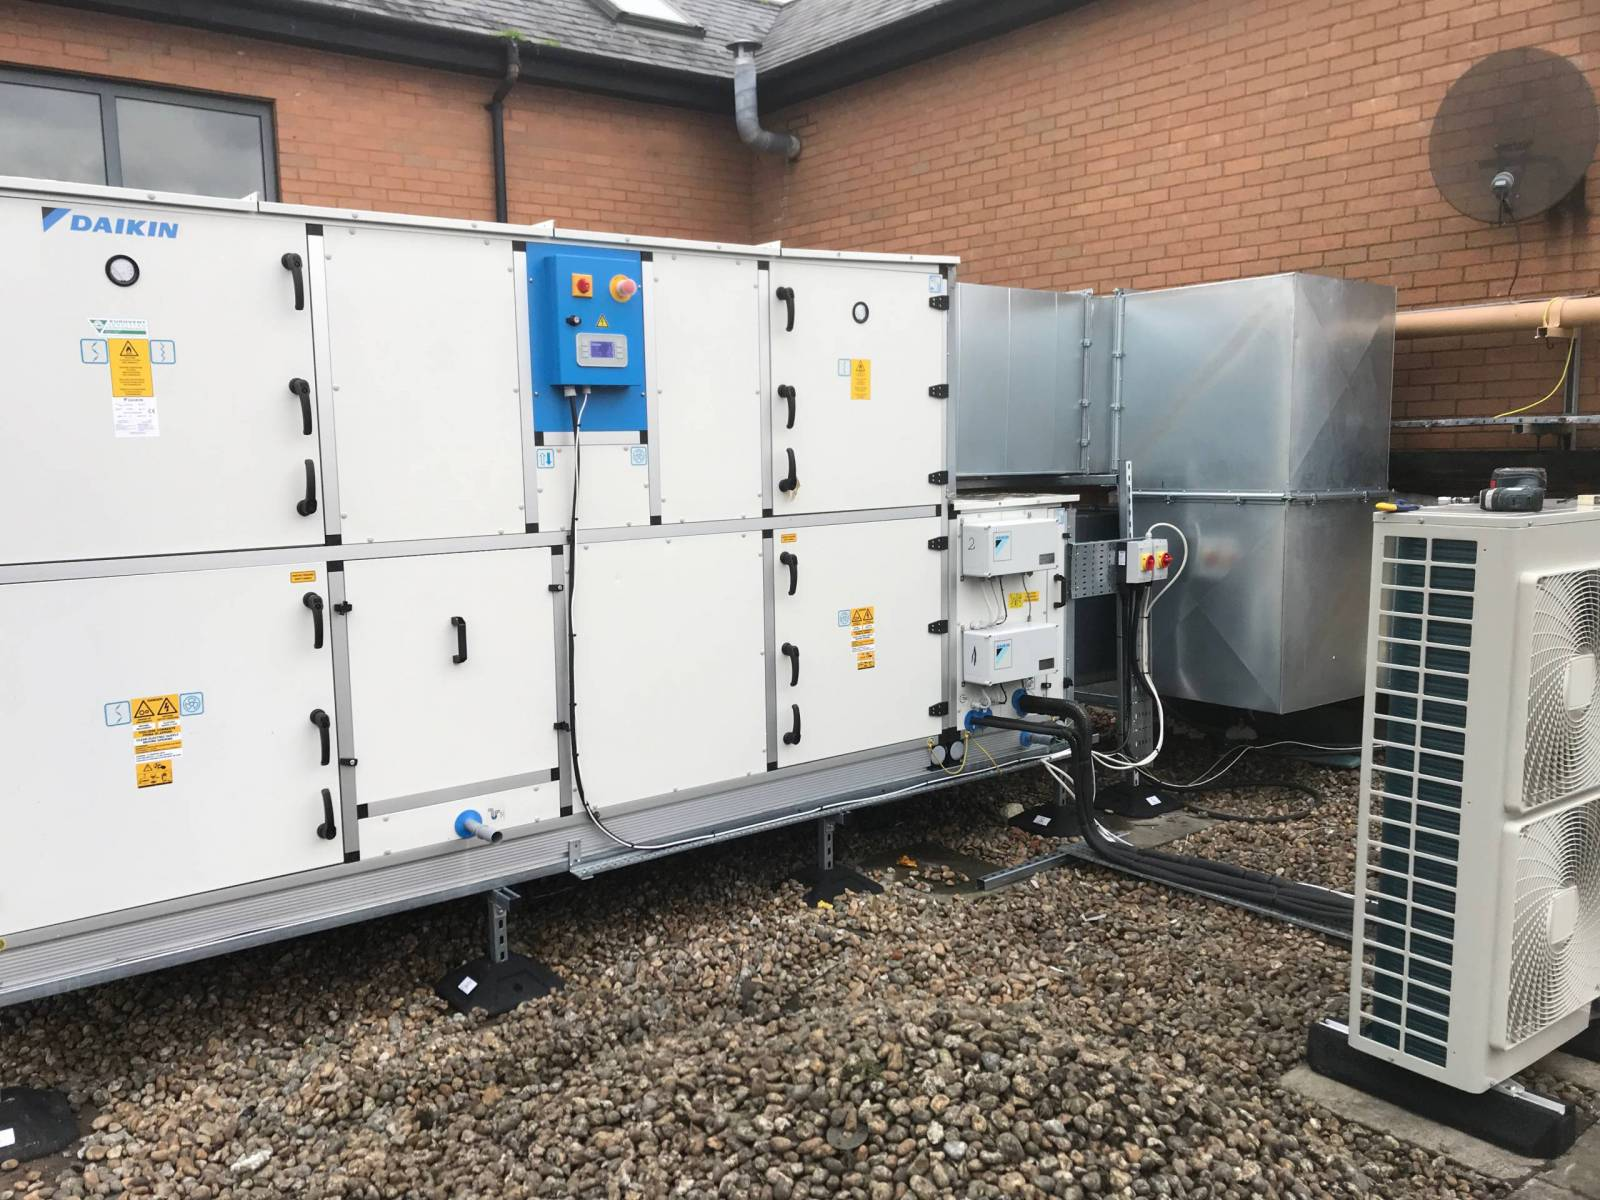 air-conditioning-service-london-commercial-air-conditioning-london